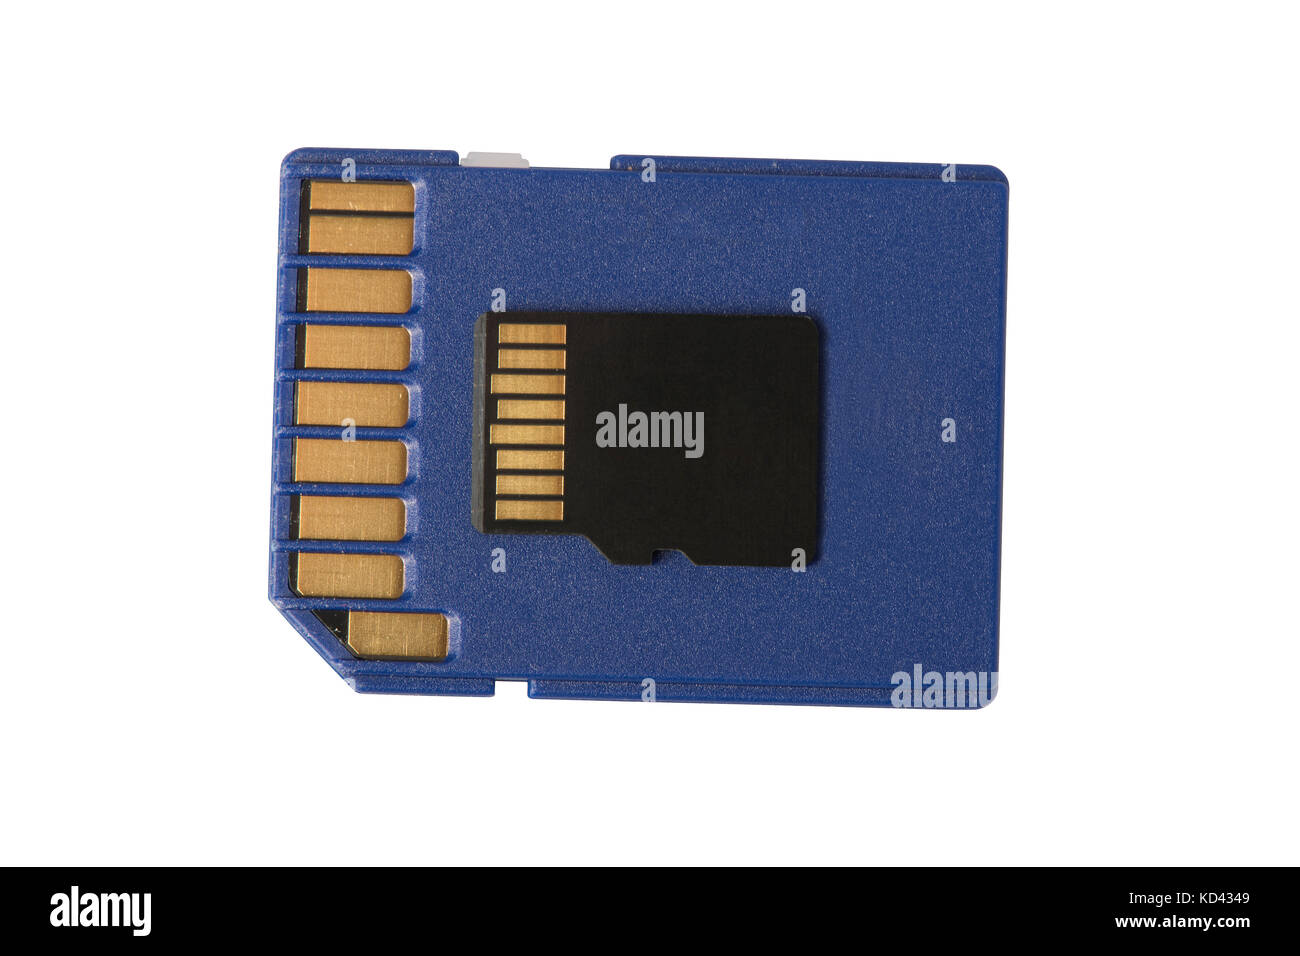 a micro sd card sitting on a regular size sd card isolated on white